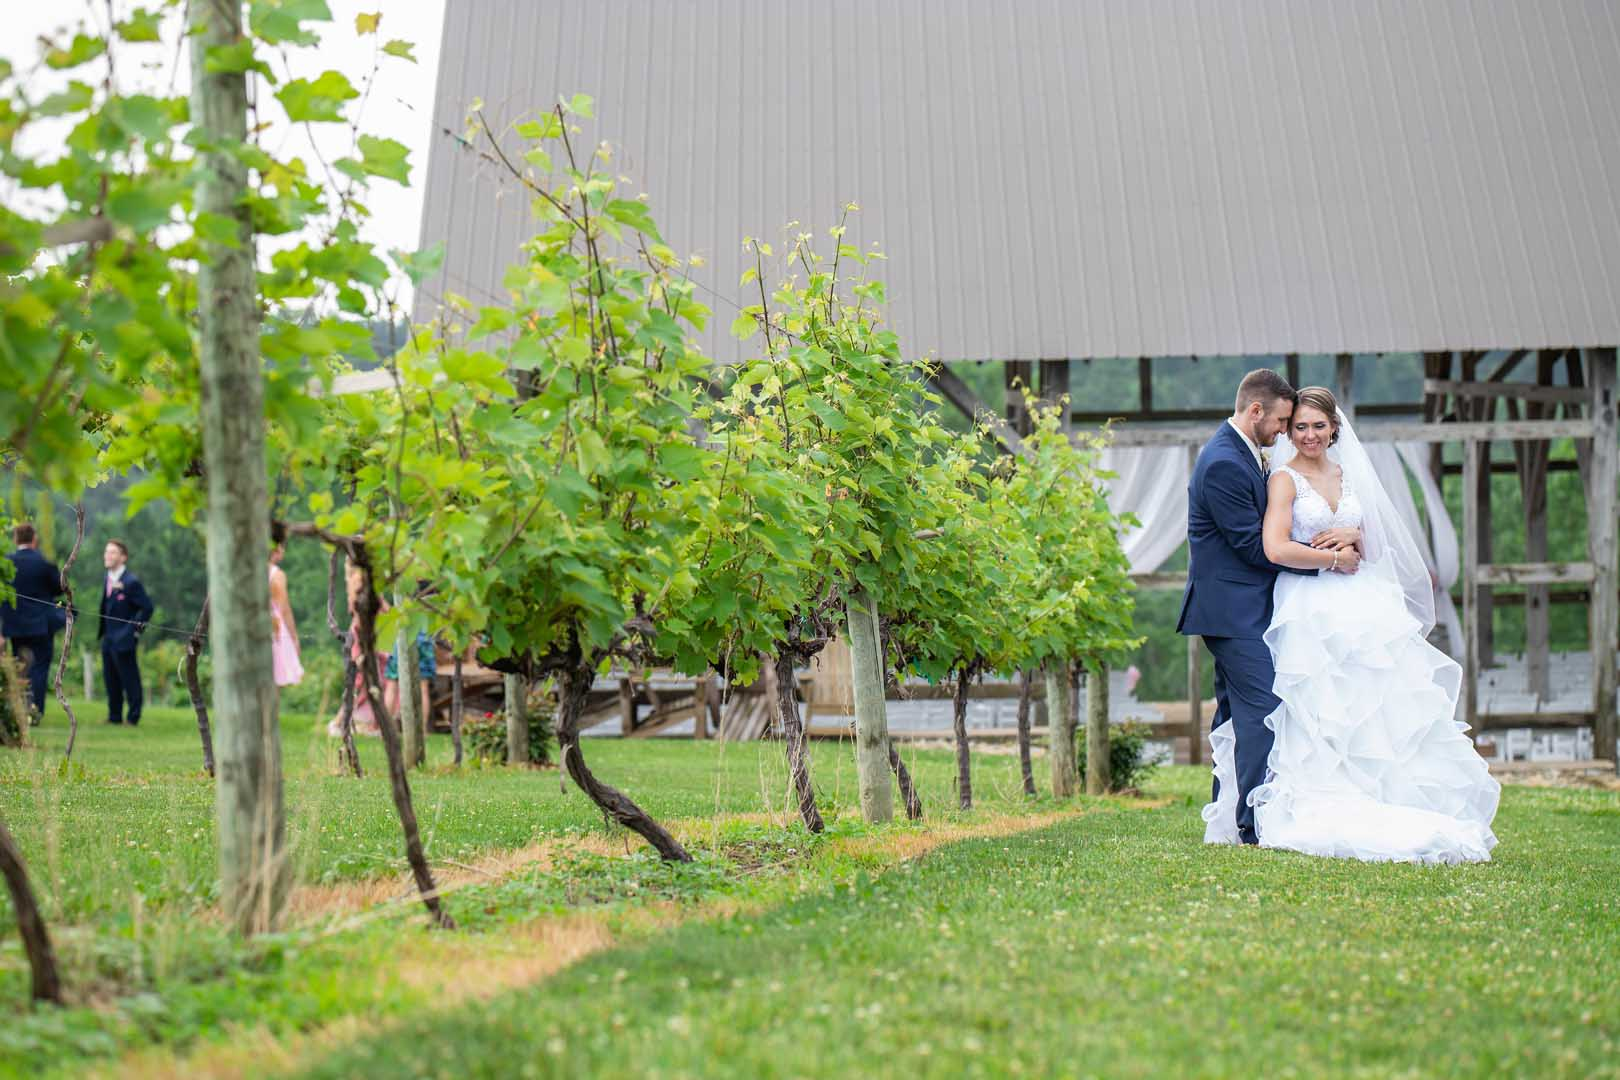 Bride and groom embracing before their wedding ceremony with a timber barn as a backdrop